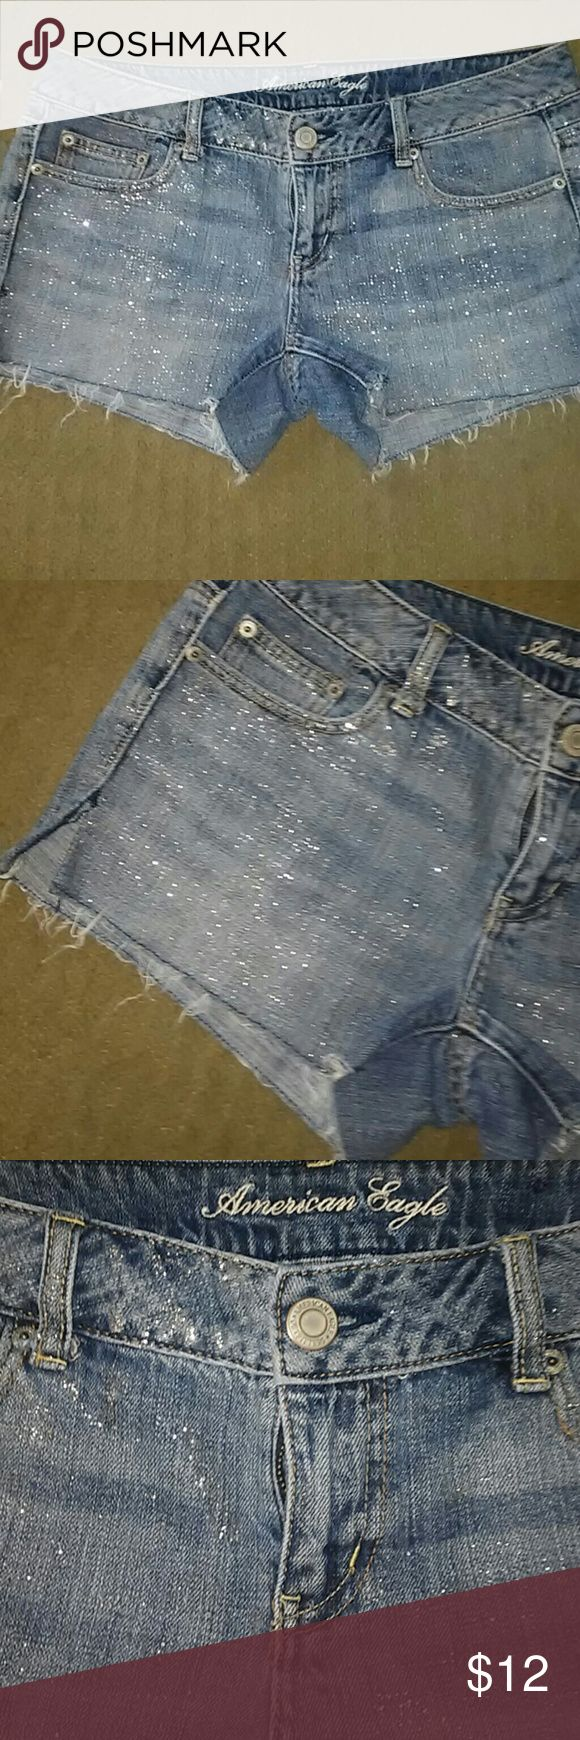 American Eagle Sparkle Shorts American Eagle cut off Sparkle shorts with a slit on the side great condition size 10 awesome pair of shorts American Eagle Outfitters Shorts Jean Shorts